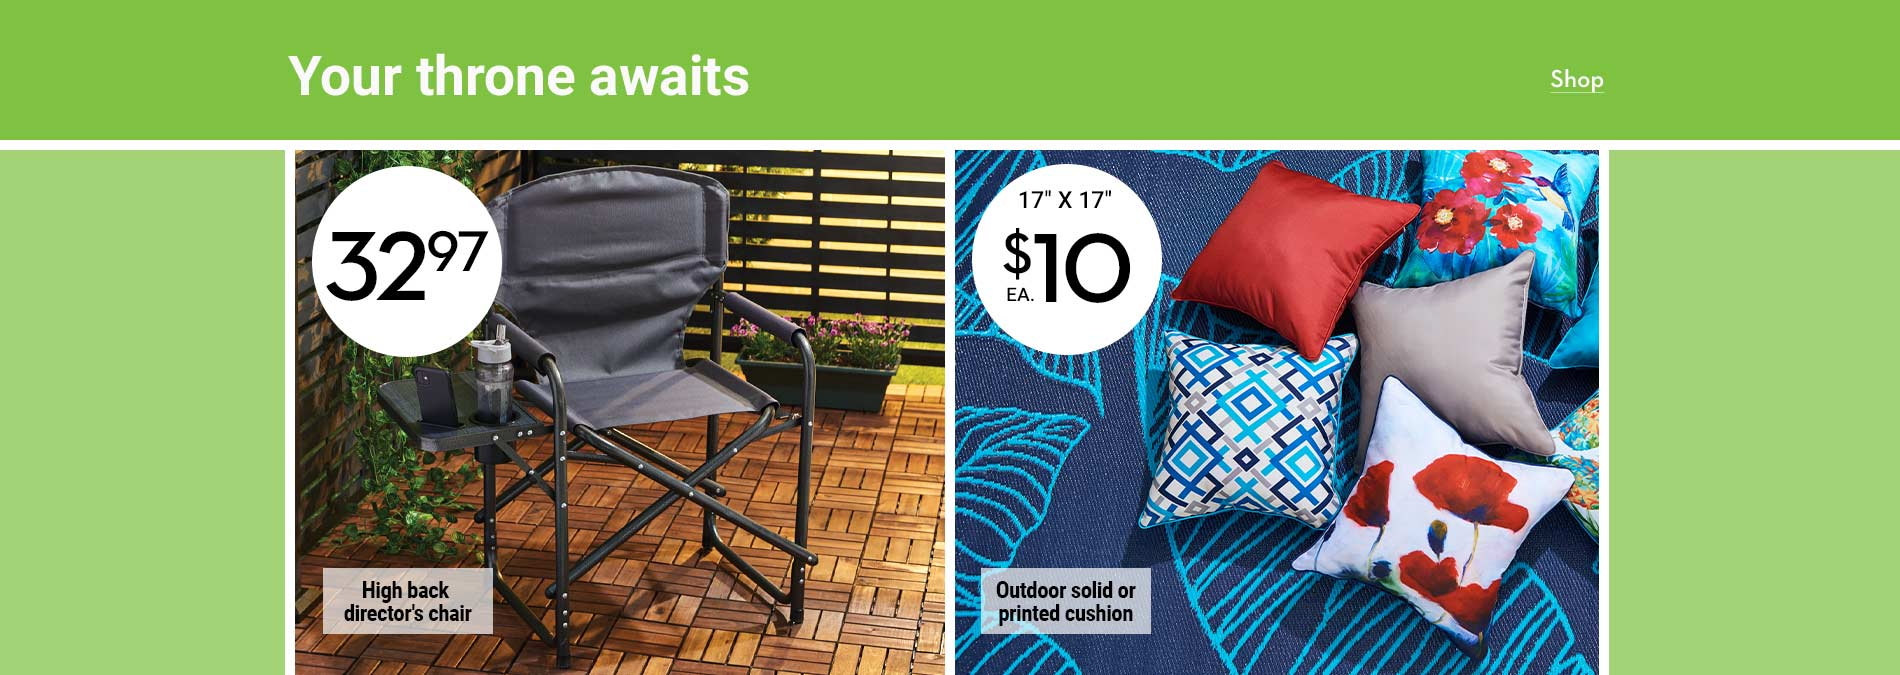 Your throne awaits. 32.97 High back director's chair. $10 Outdoor solid or printed cushion